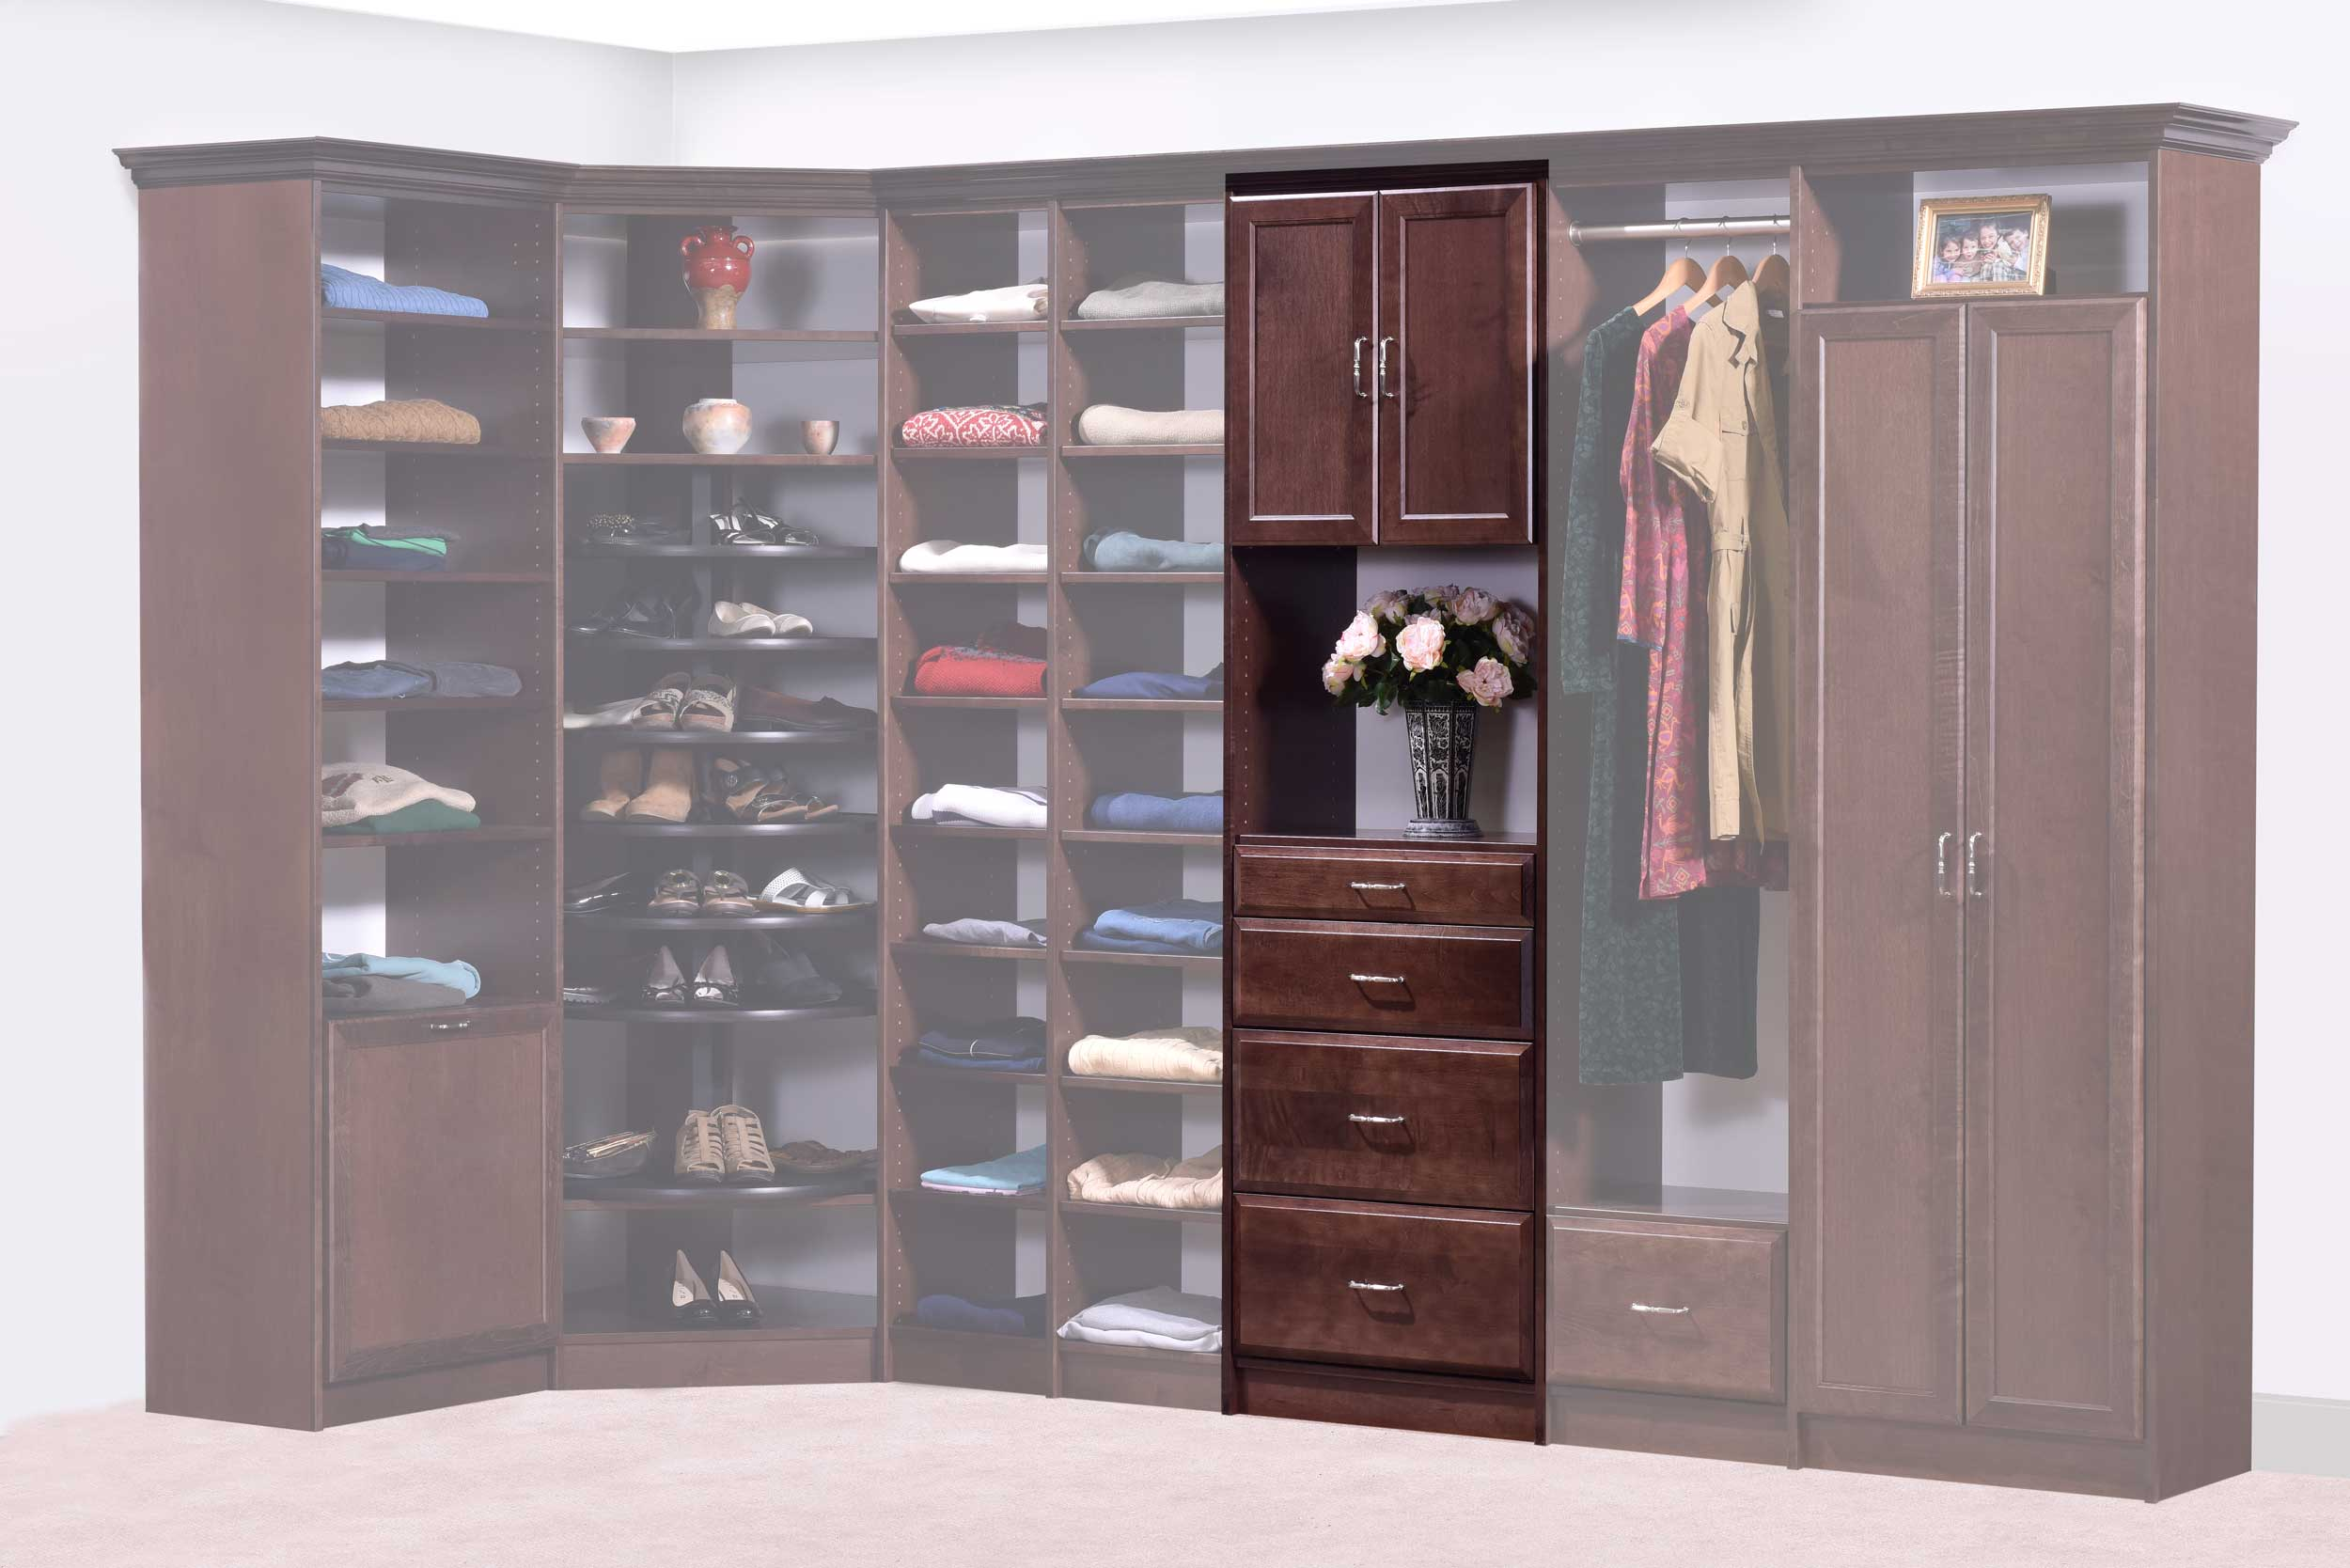 shelf systems with materal qualty addtonal installation favorte thng coupon wood tower organizers closets drawers closet s modular doors